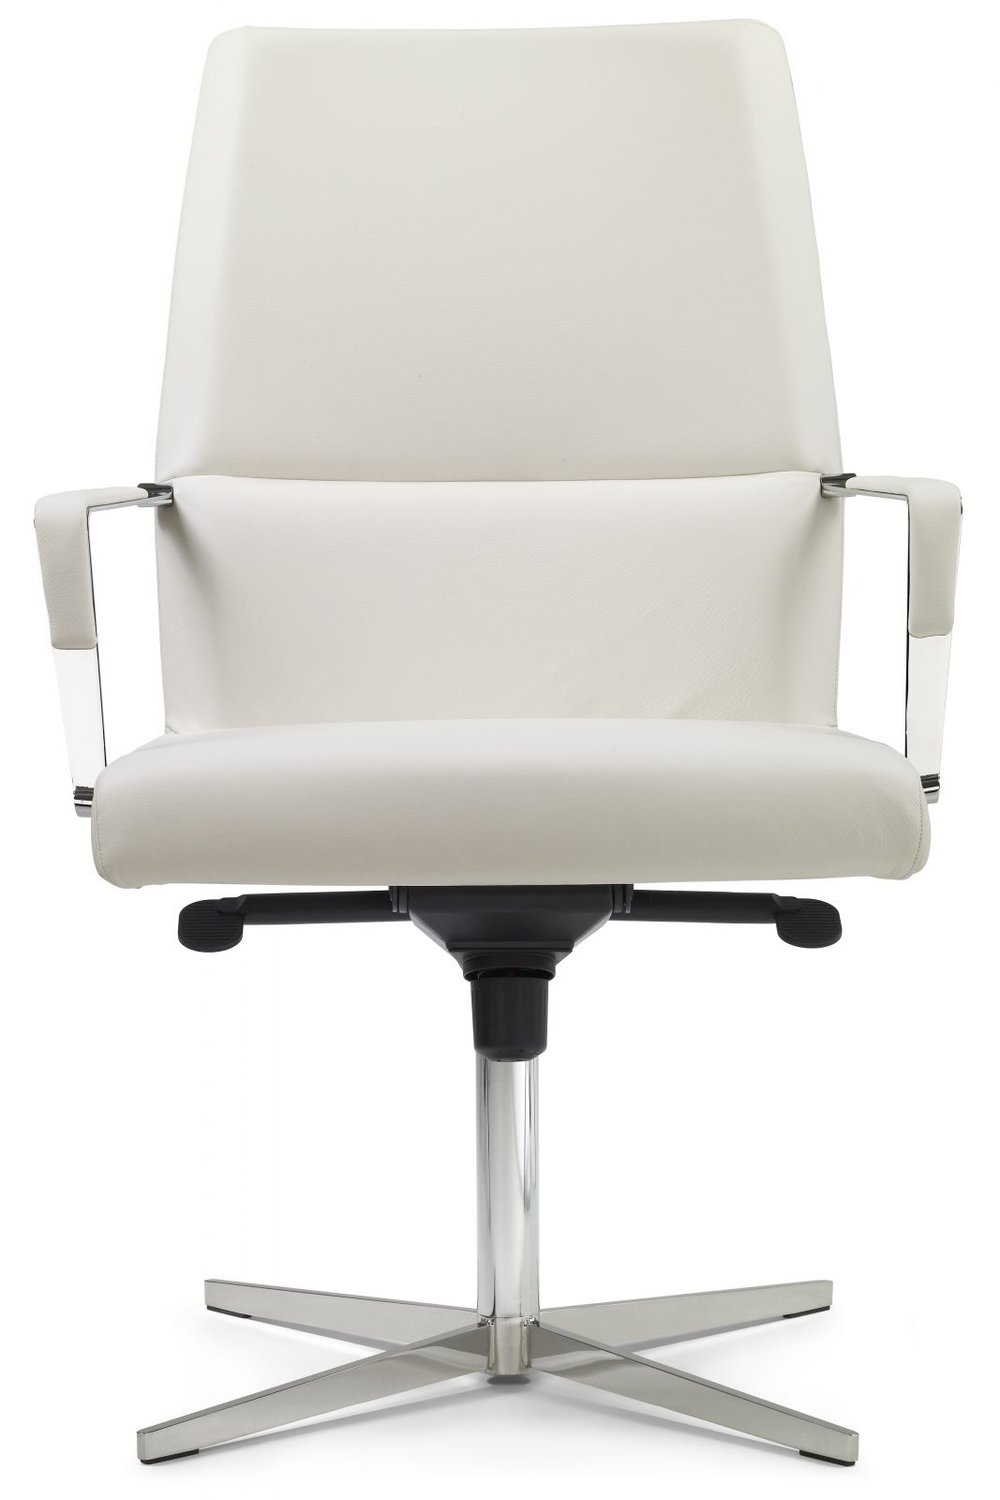 modern-office-chairs-Italian-furniture-designer-chairs (20).jpg